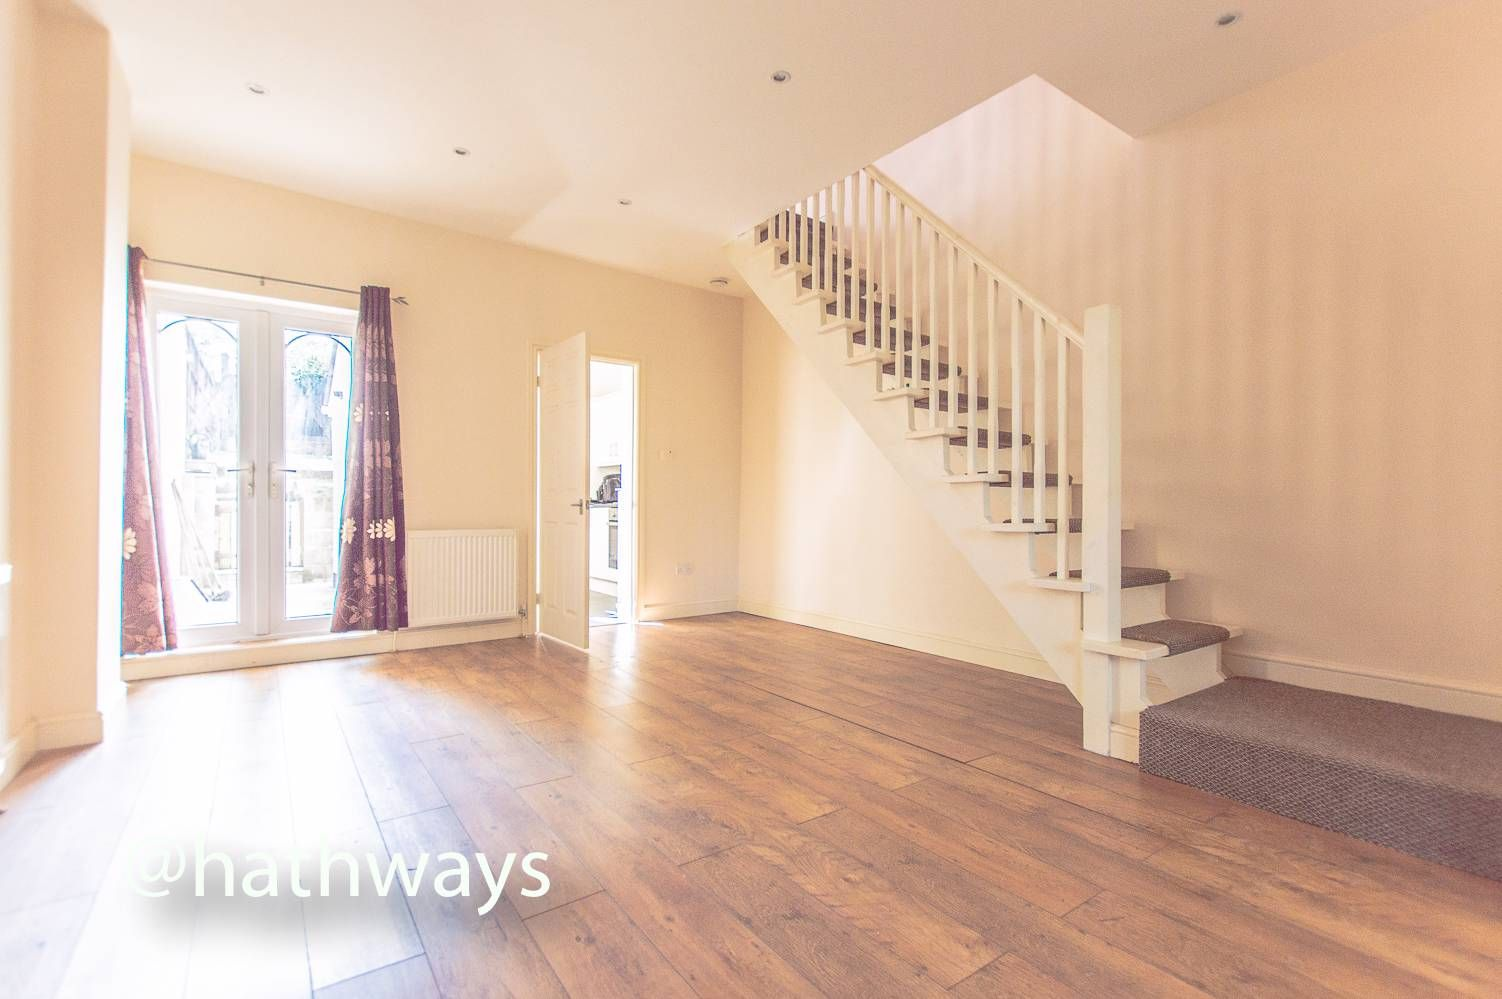 3 bed house for sale in Glenview 4